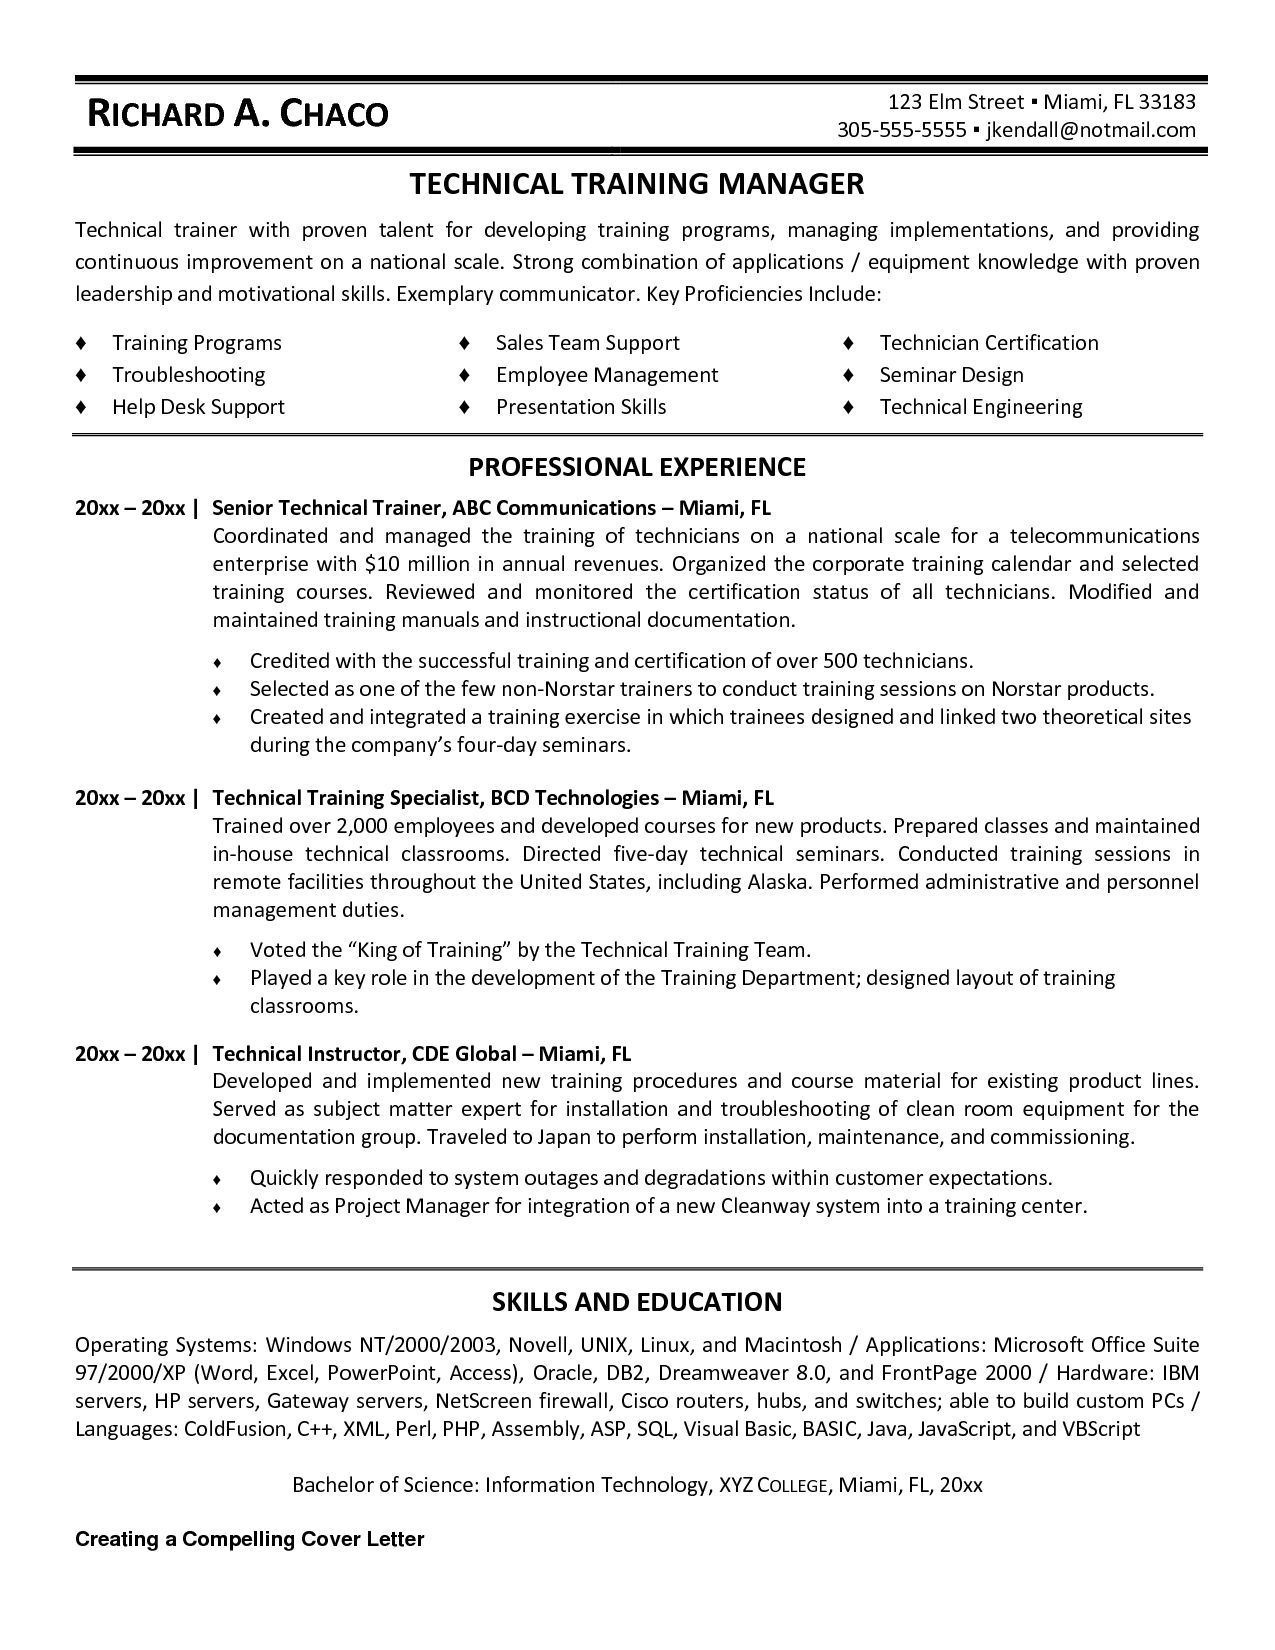 Fitness Trainer Resume Template Personal Trainer Resume Objective Personal Trainer Resume